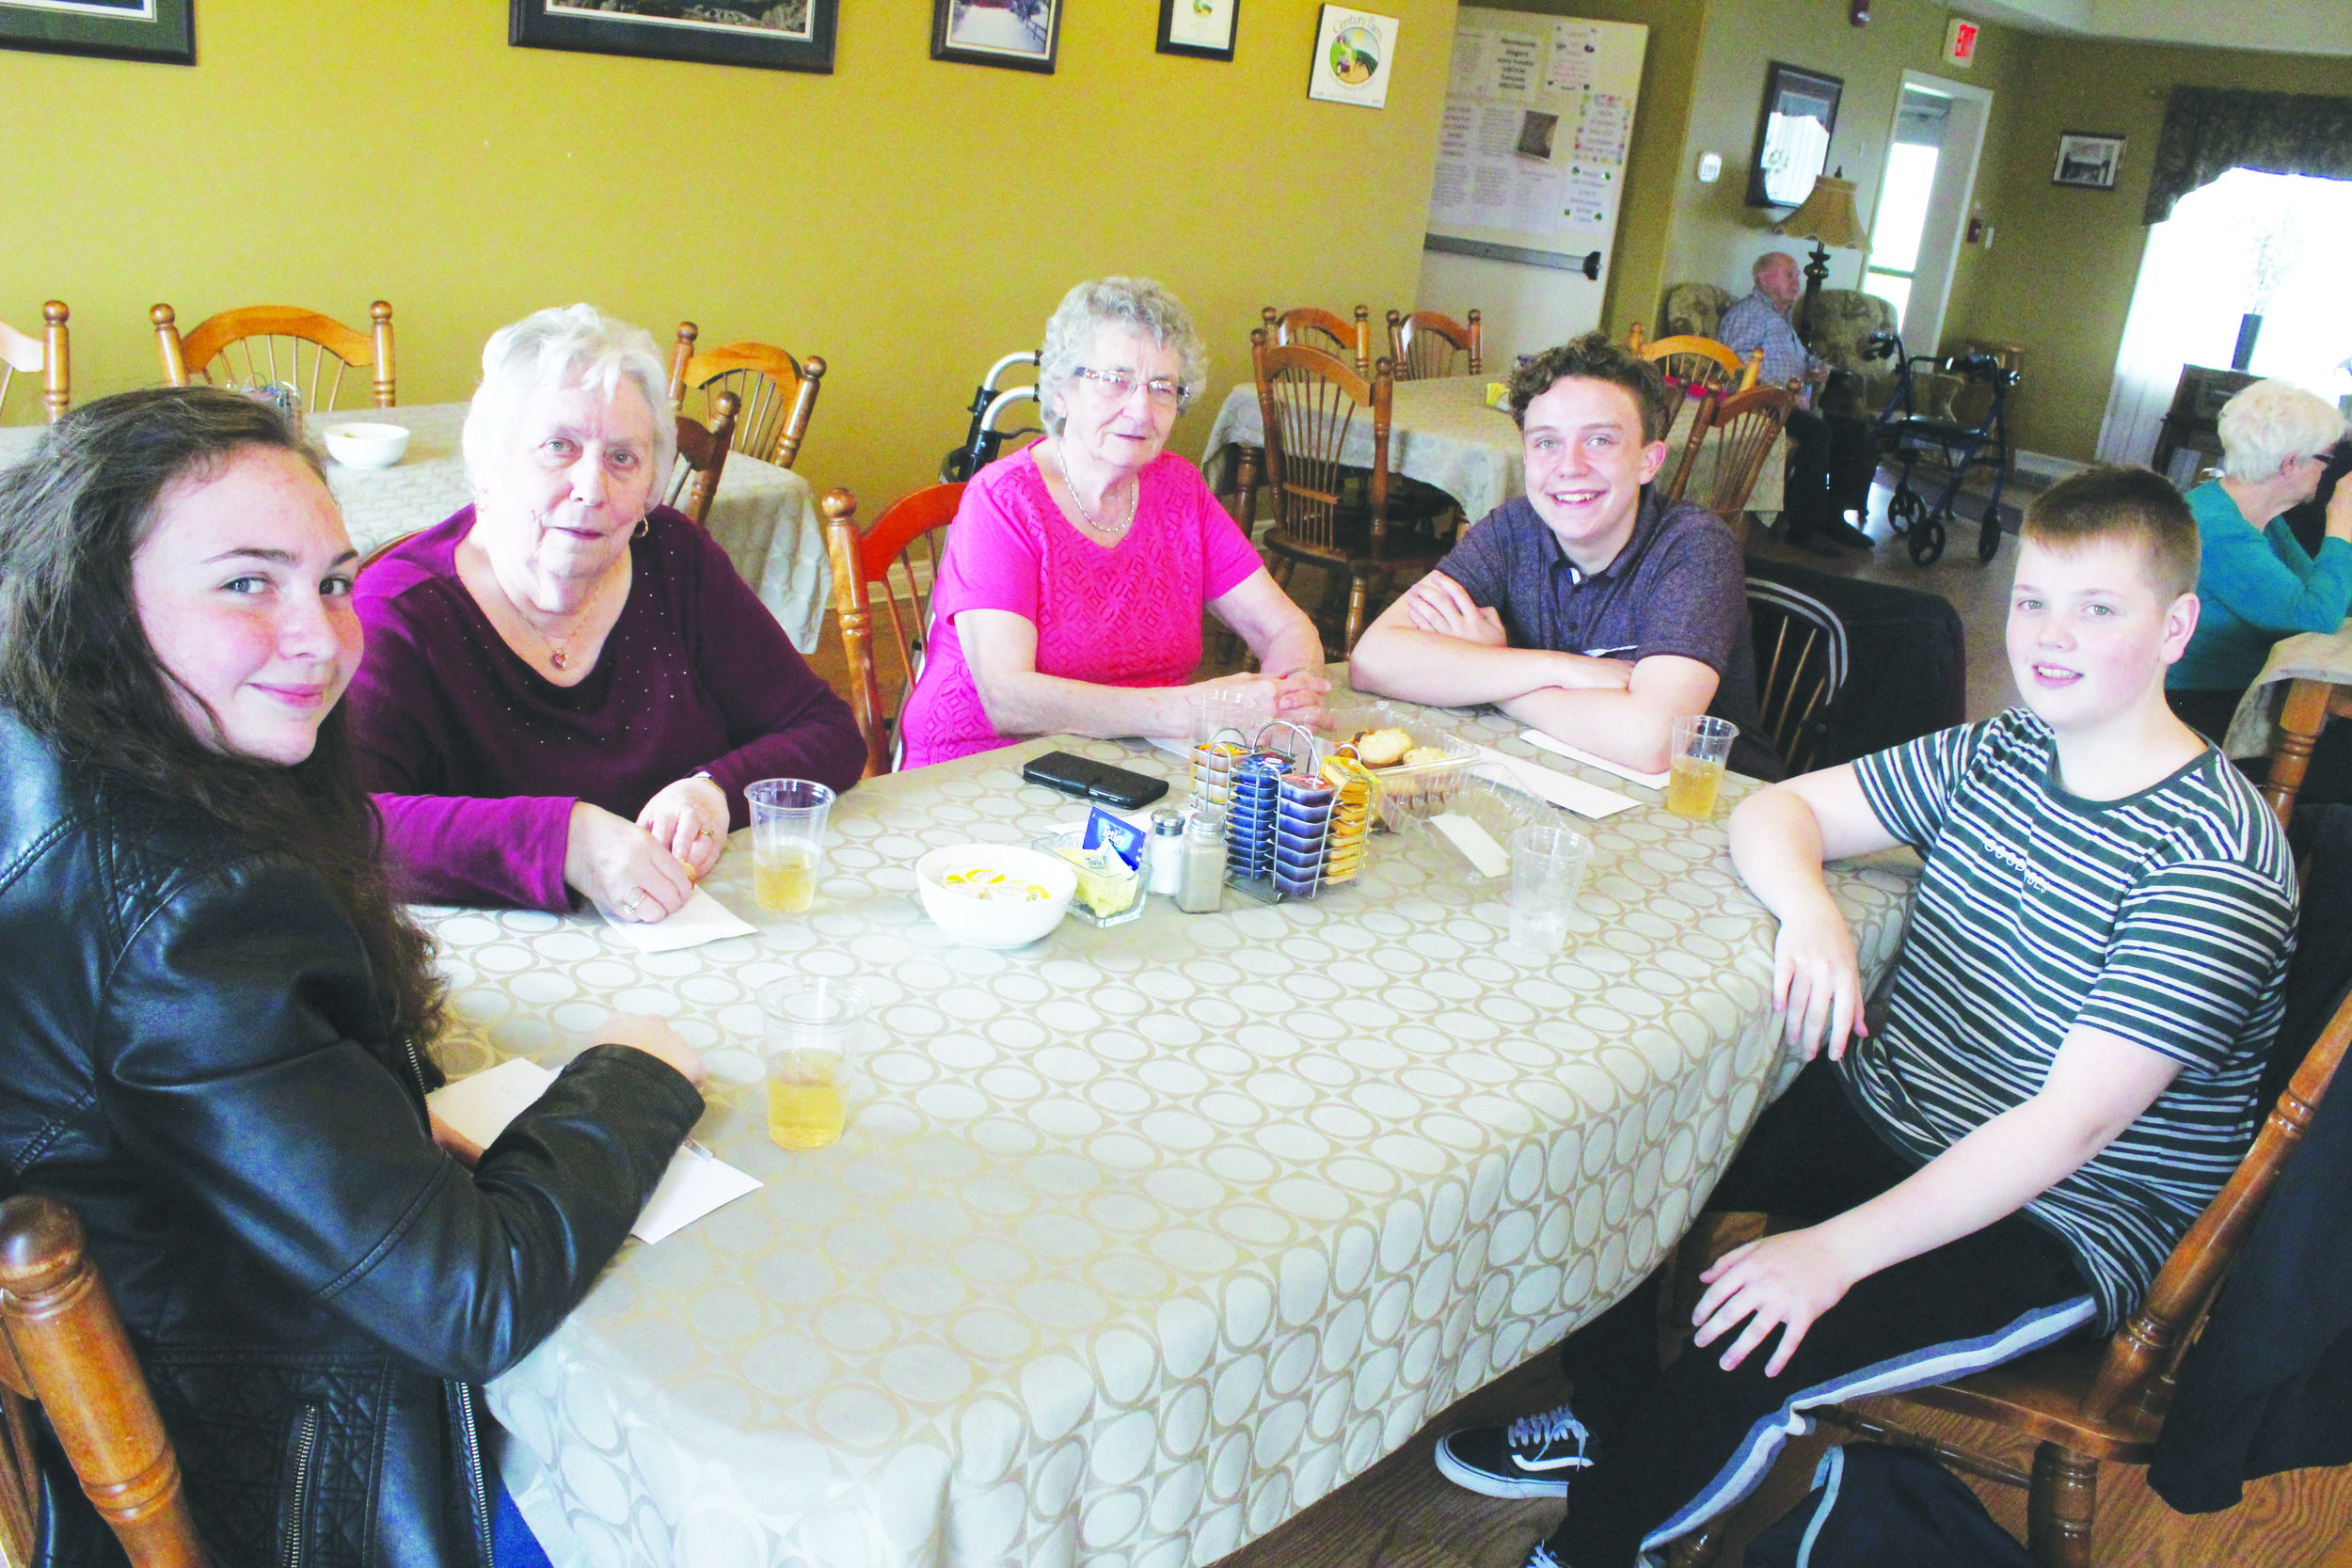 Members of the St. Kevin's social justice club and residents at Ruby Manor got to meet face-to-face after writing pen pal letters to one another over the last several months. Here ,from left to right, Holley Hennessey, Marguerite Hoyles, Violet Bixby, Isaac Shannahan, and Joey Williams.  Mark Squibb photo